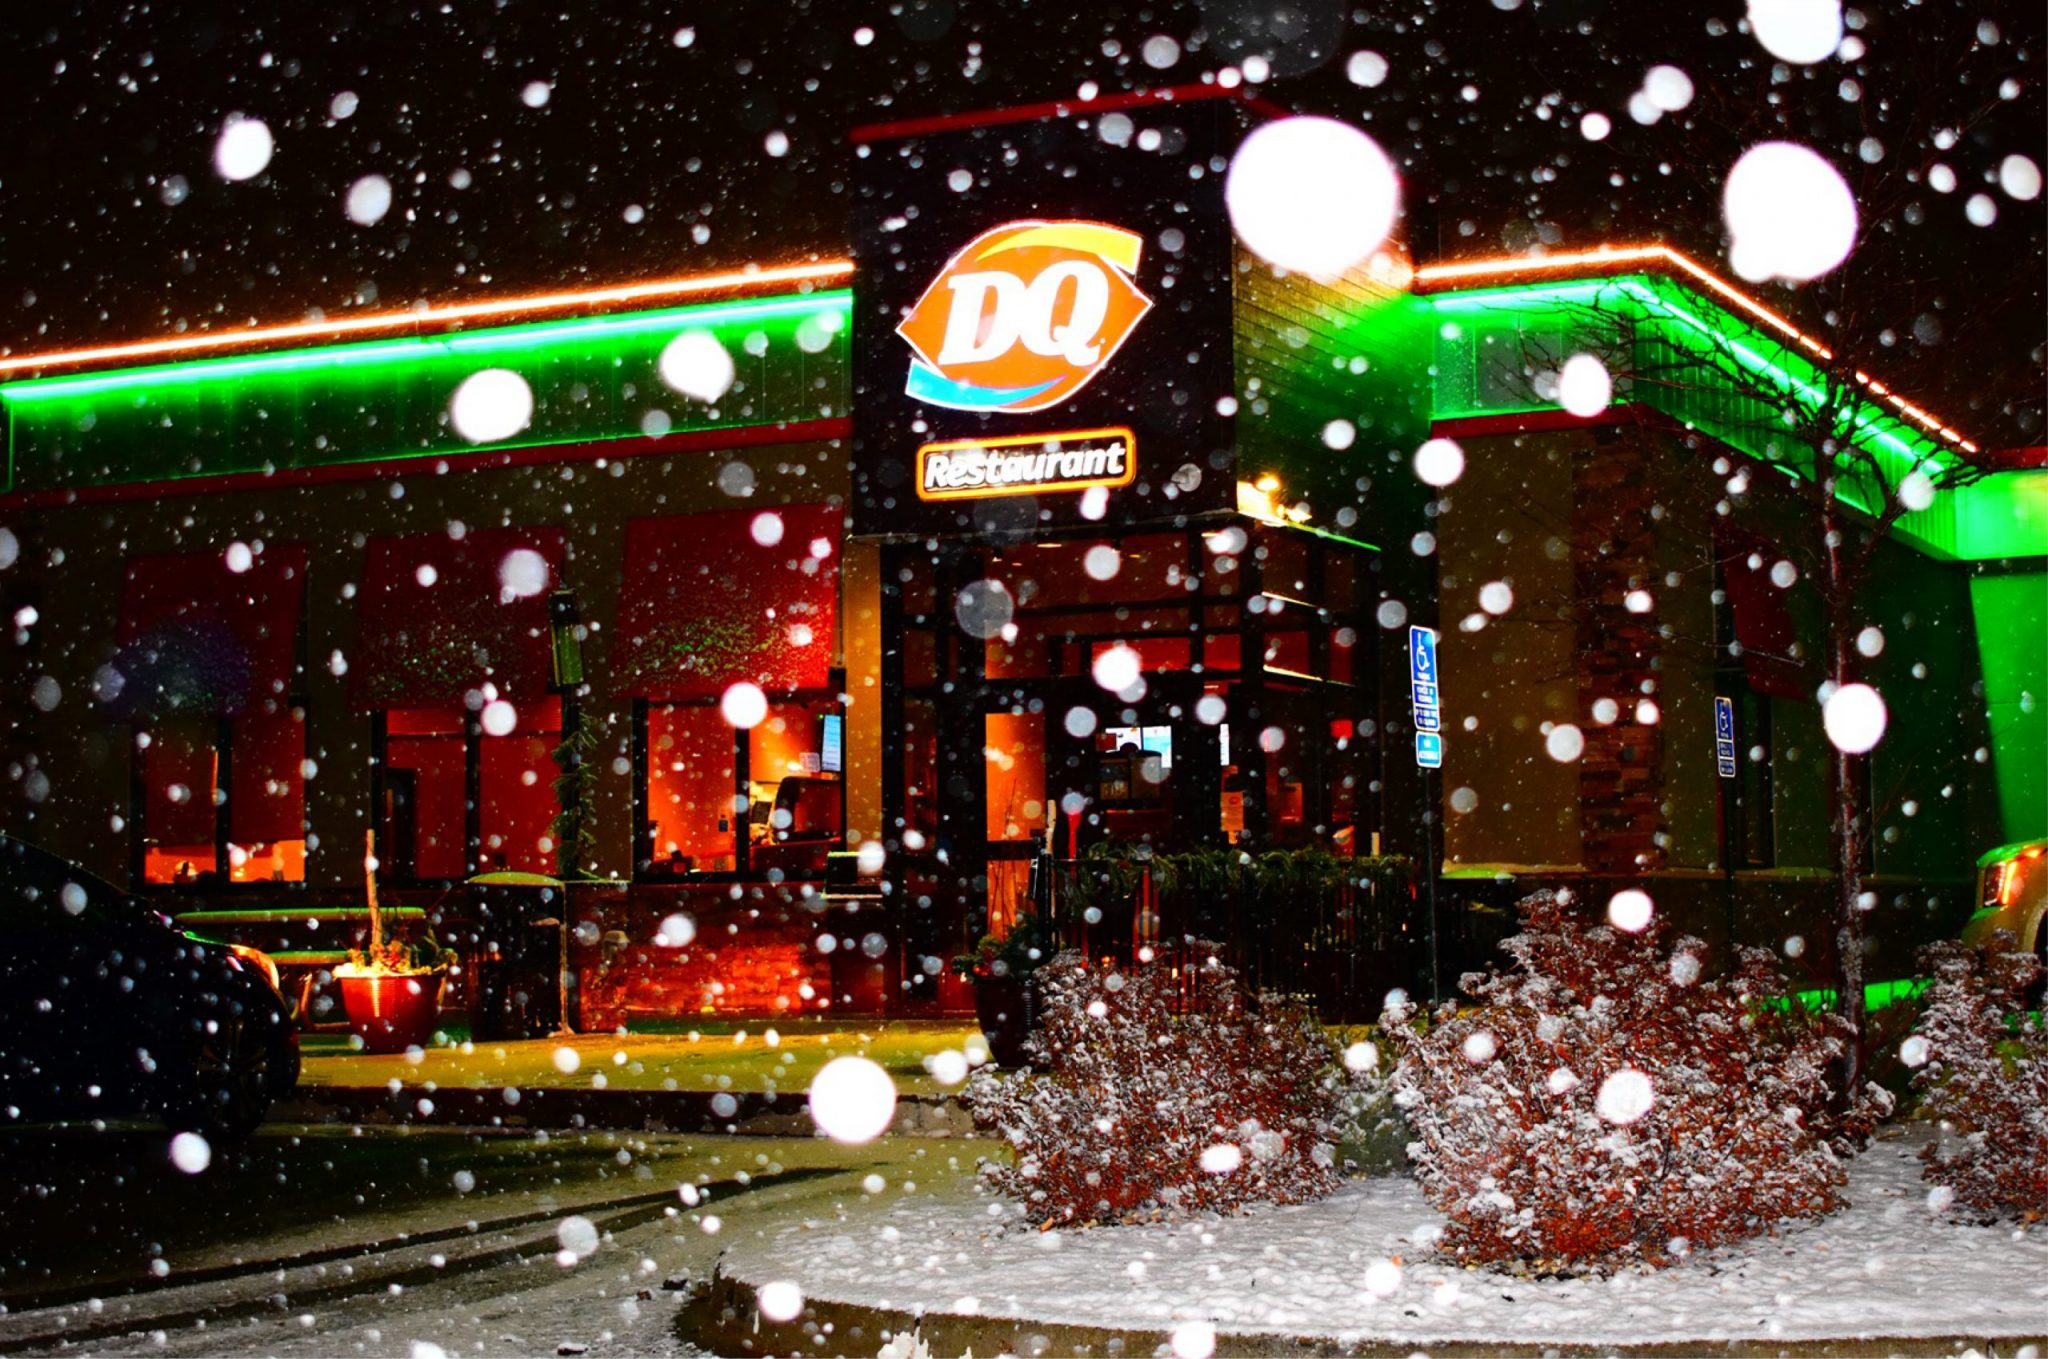 Is Dairy Queen Open On Christmas Eve 2020 Index of /wp content/uploads/2020/01